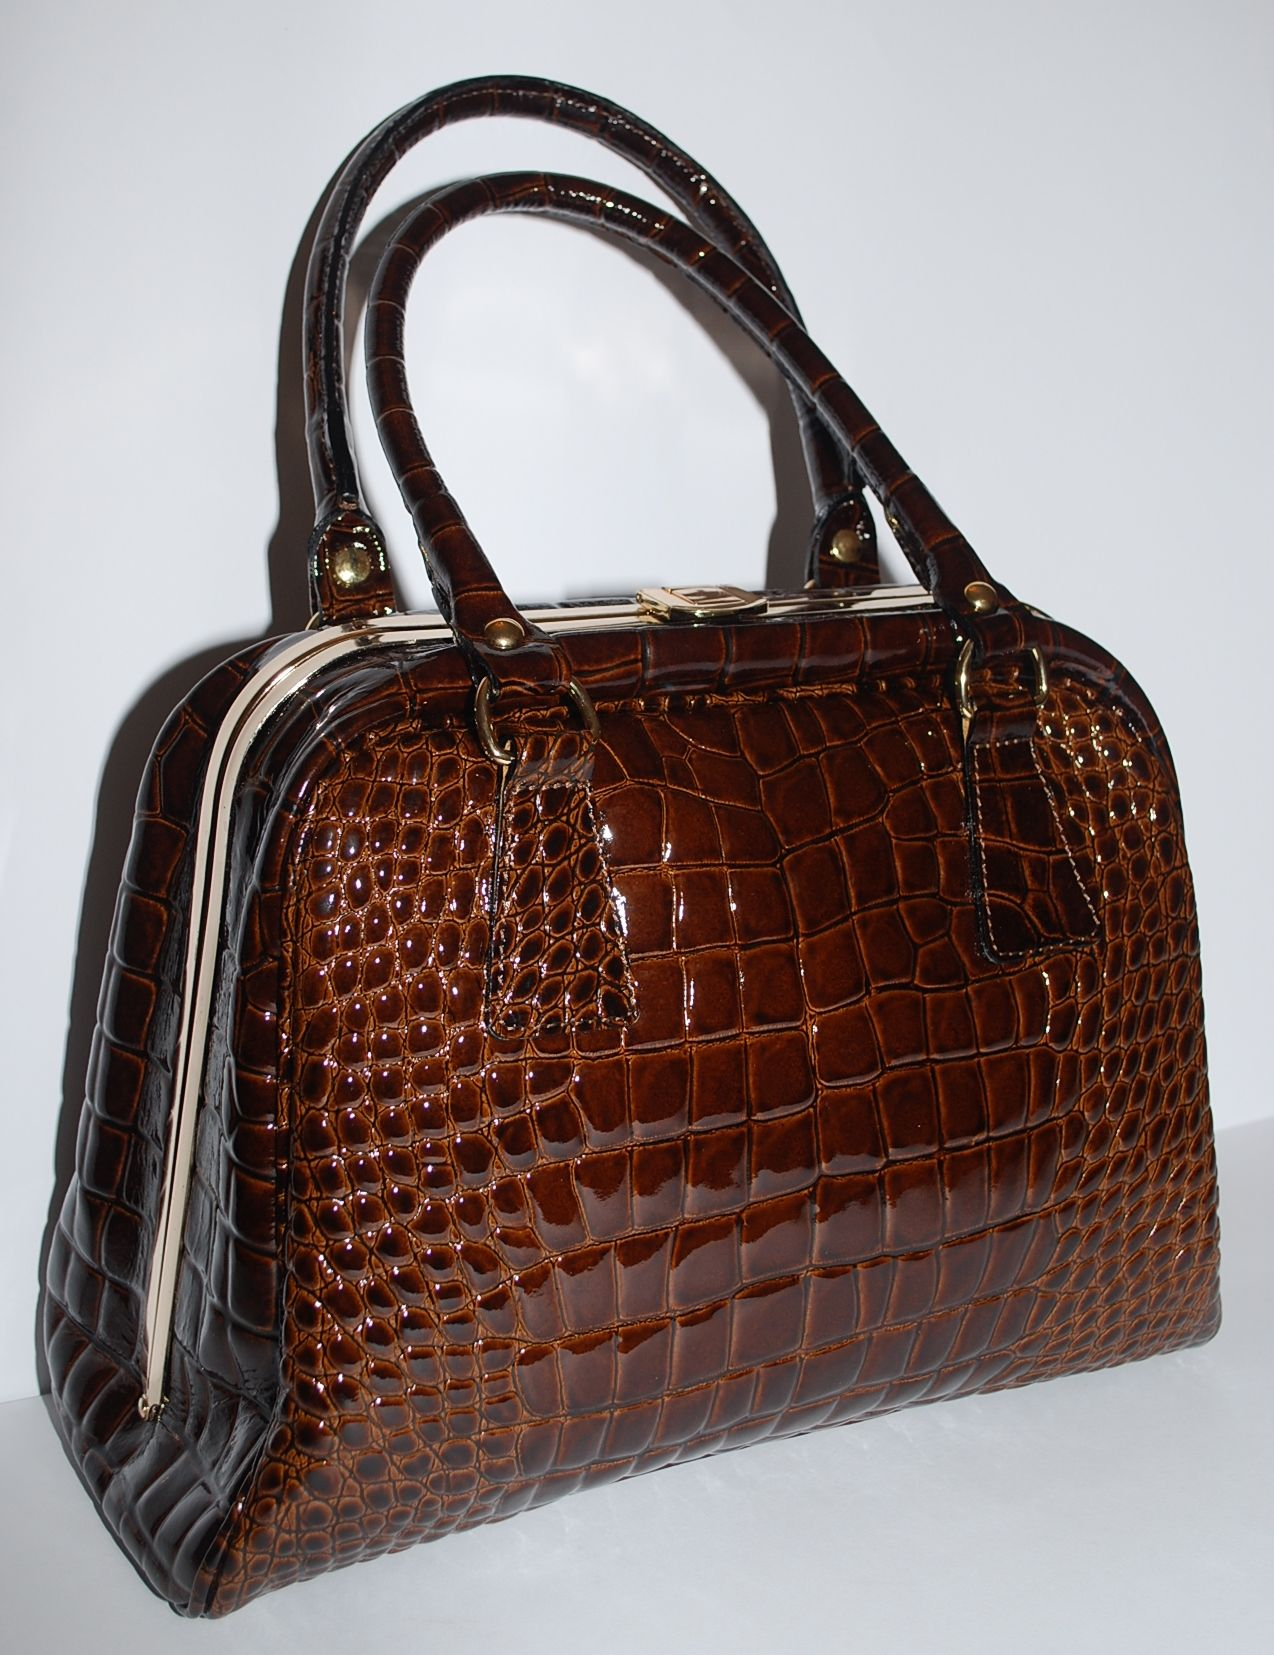 Brown Patent Mock Croc Leather Borse In Pelle Italian Handbag